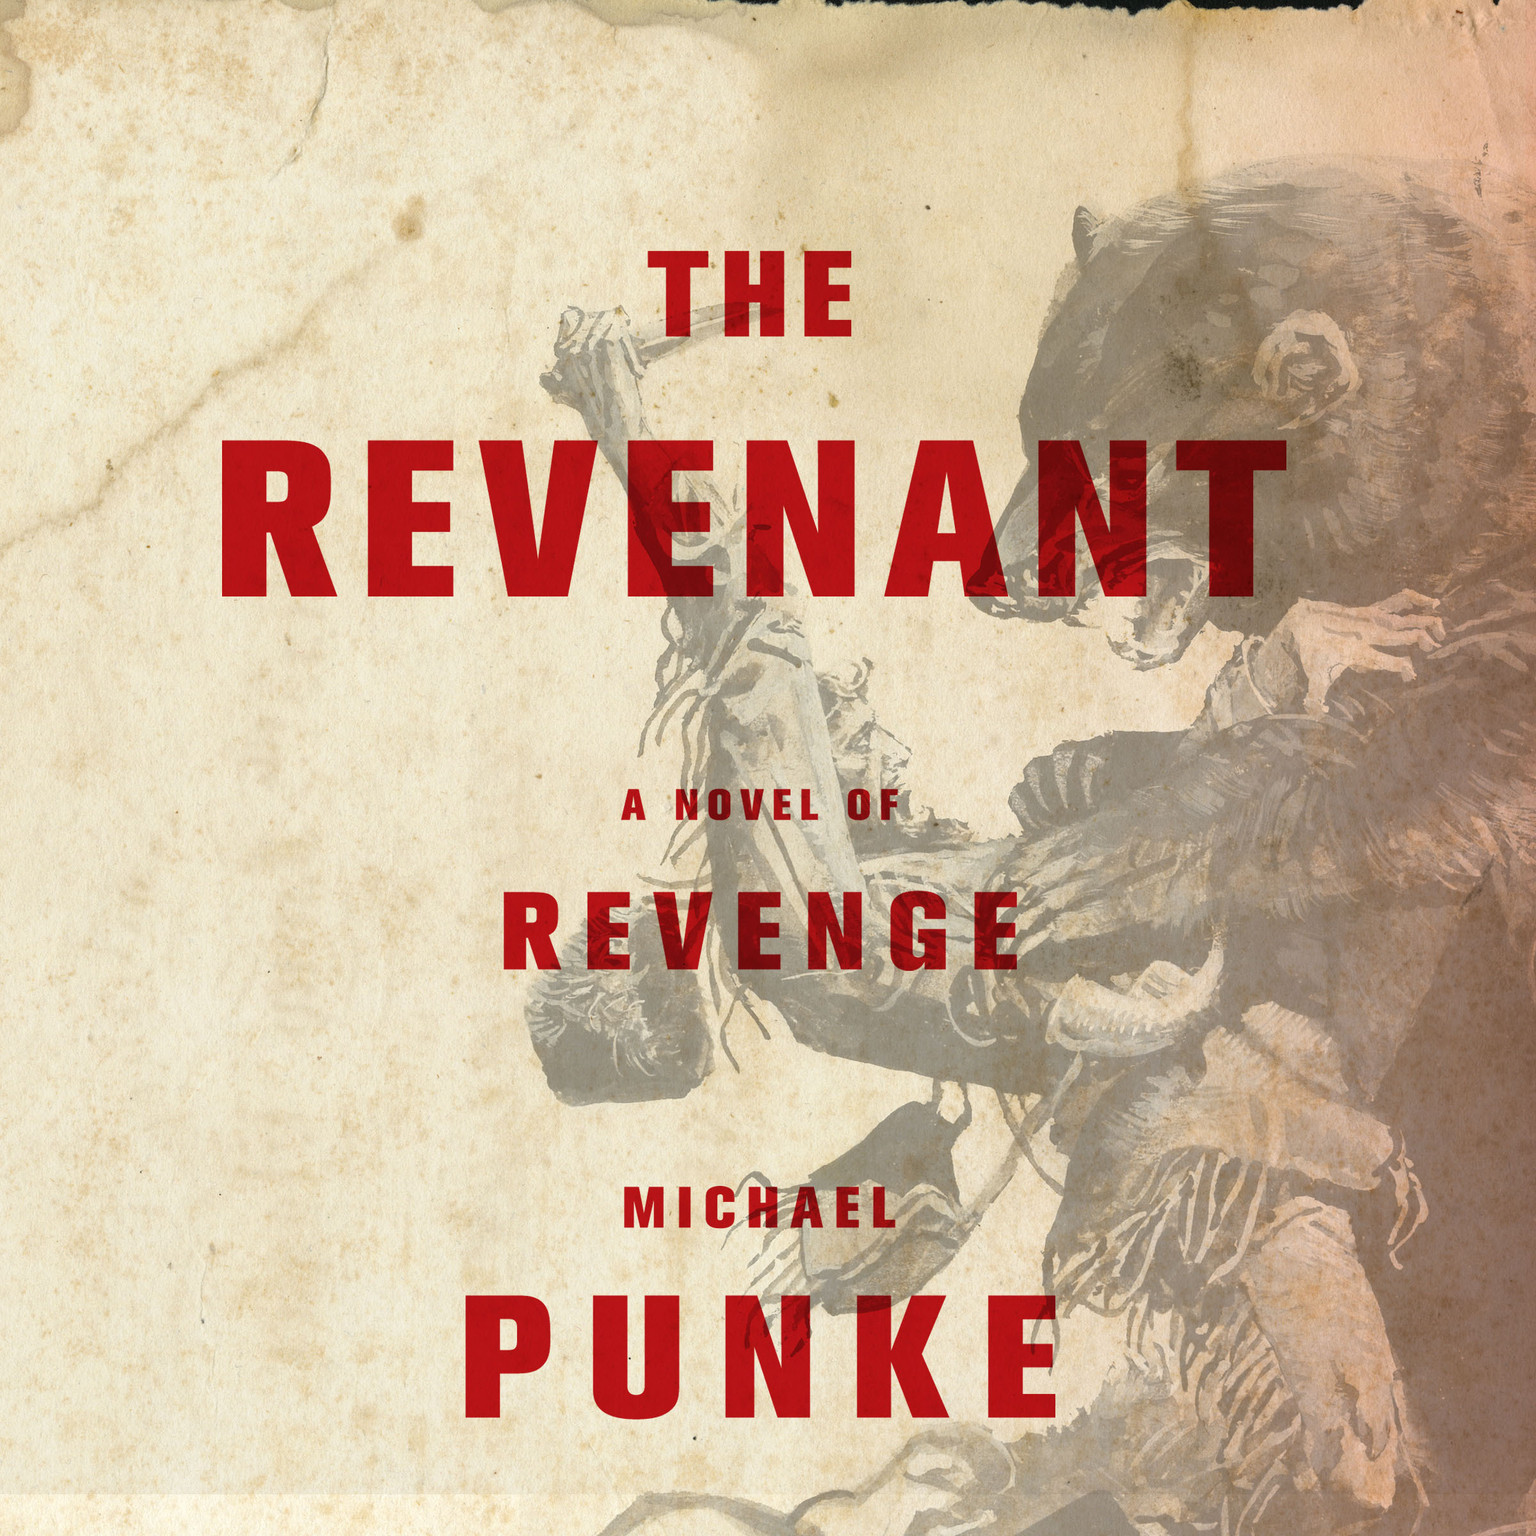 Book cover for Michael Punke's The Revenant in the South Manchester, Chorlton, and Didsbury book group